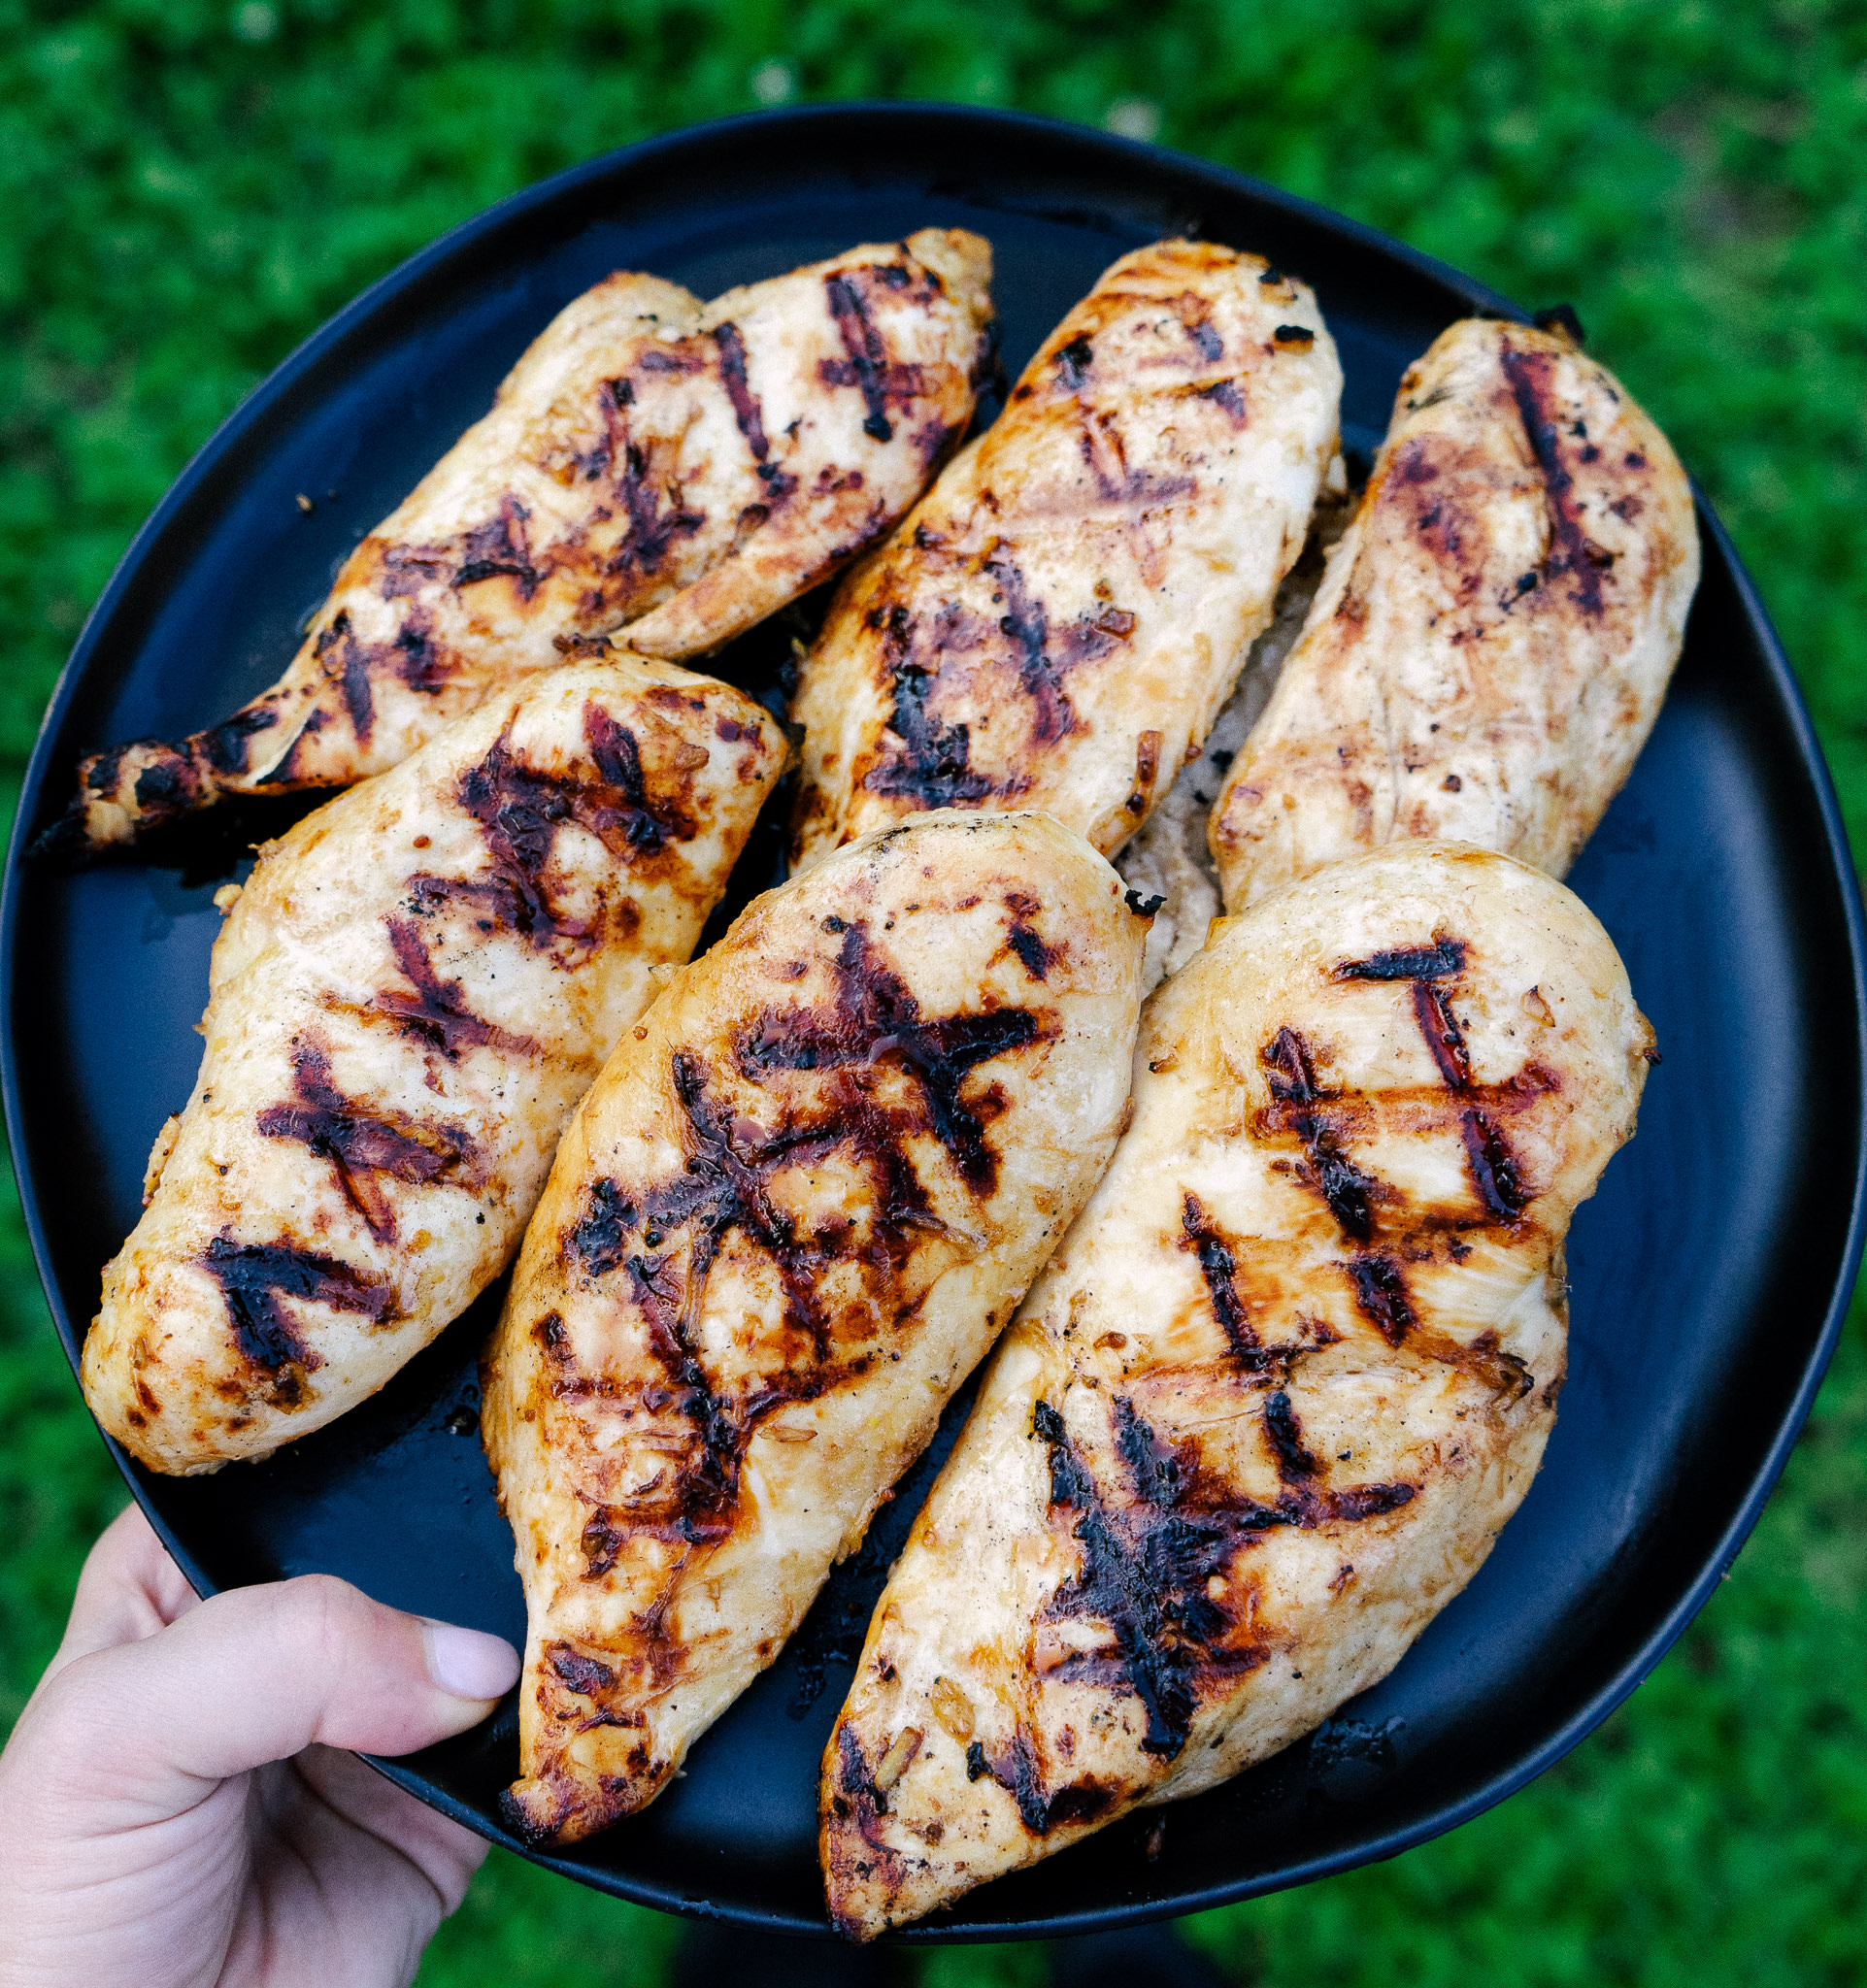 Grilled ginger lime chicken will make you rethink all your thoughts about chicken. This simple and healthy marinade packs the chicken with flavor. This whole30 chicken recipe is perfect for salads, sandwiches or a simple barbecue.